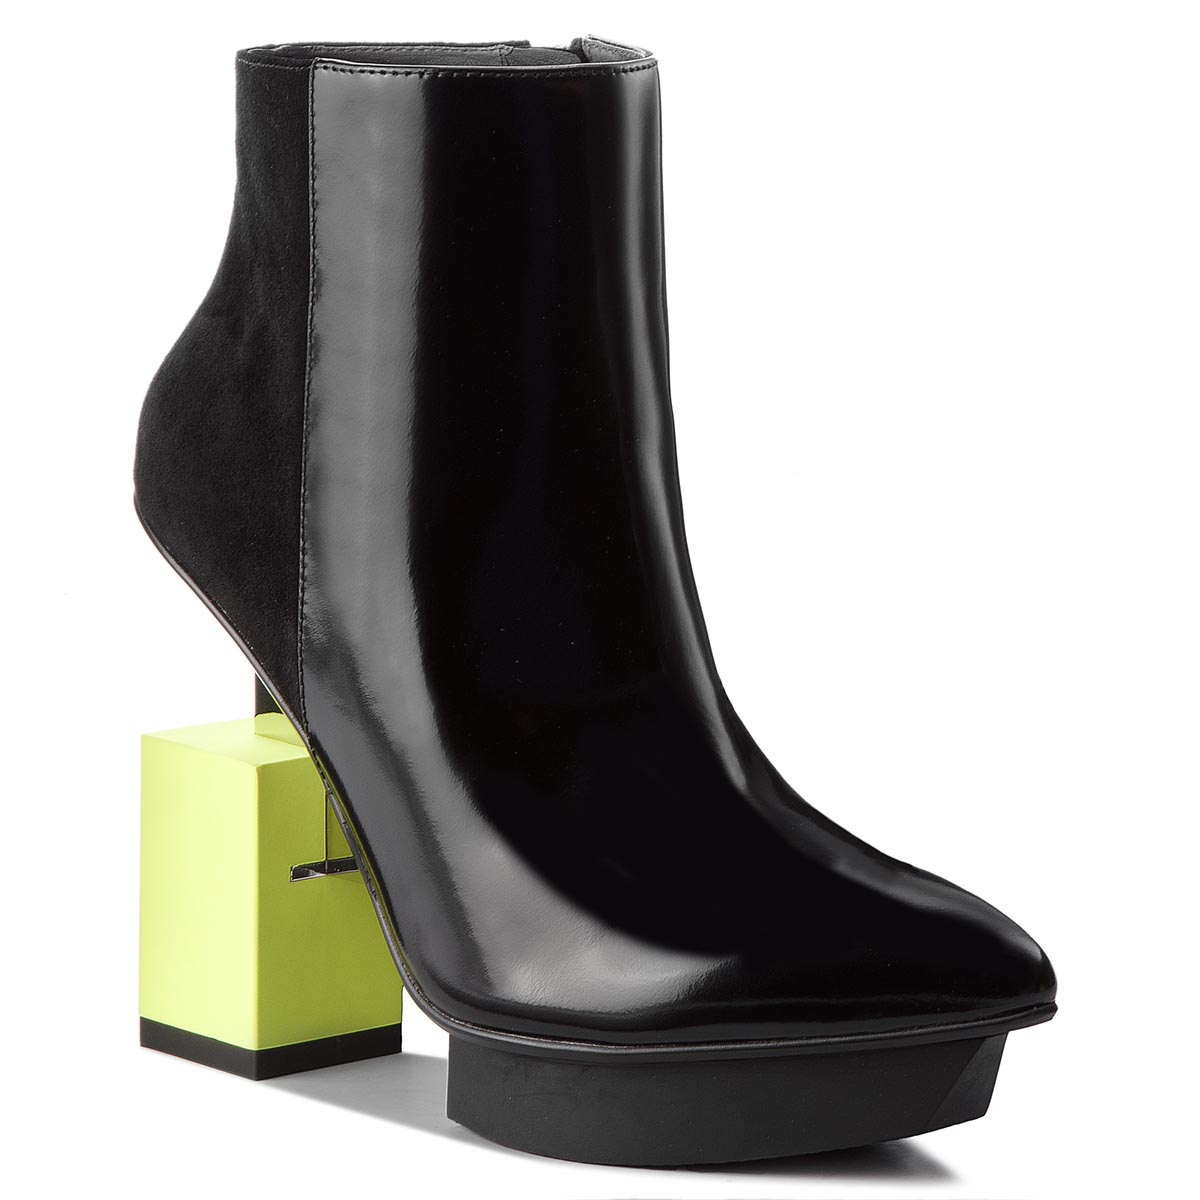 Botki UNITED NUDE - Cube Bootie 103410131811904 Black/Lime